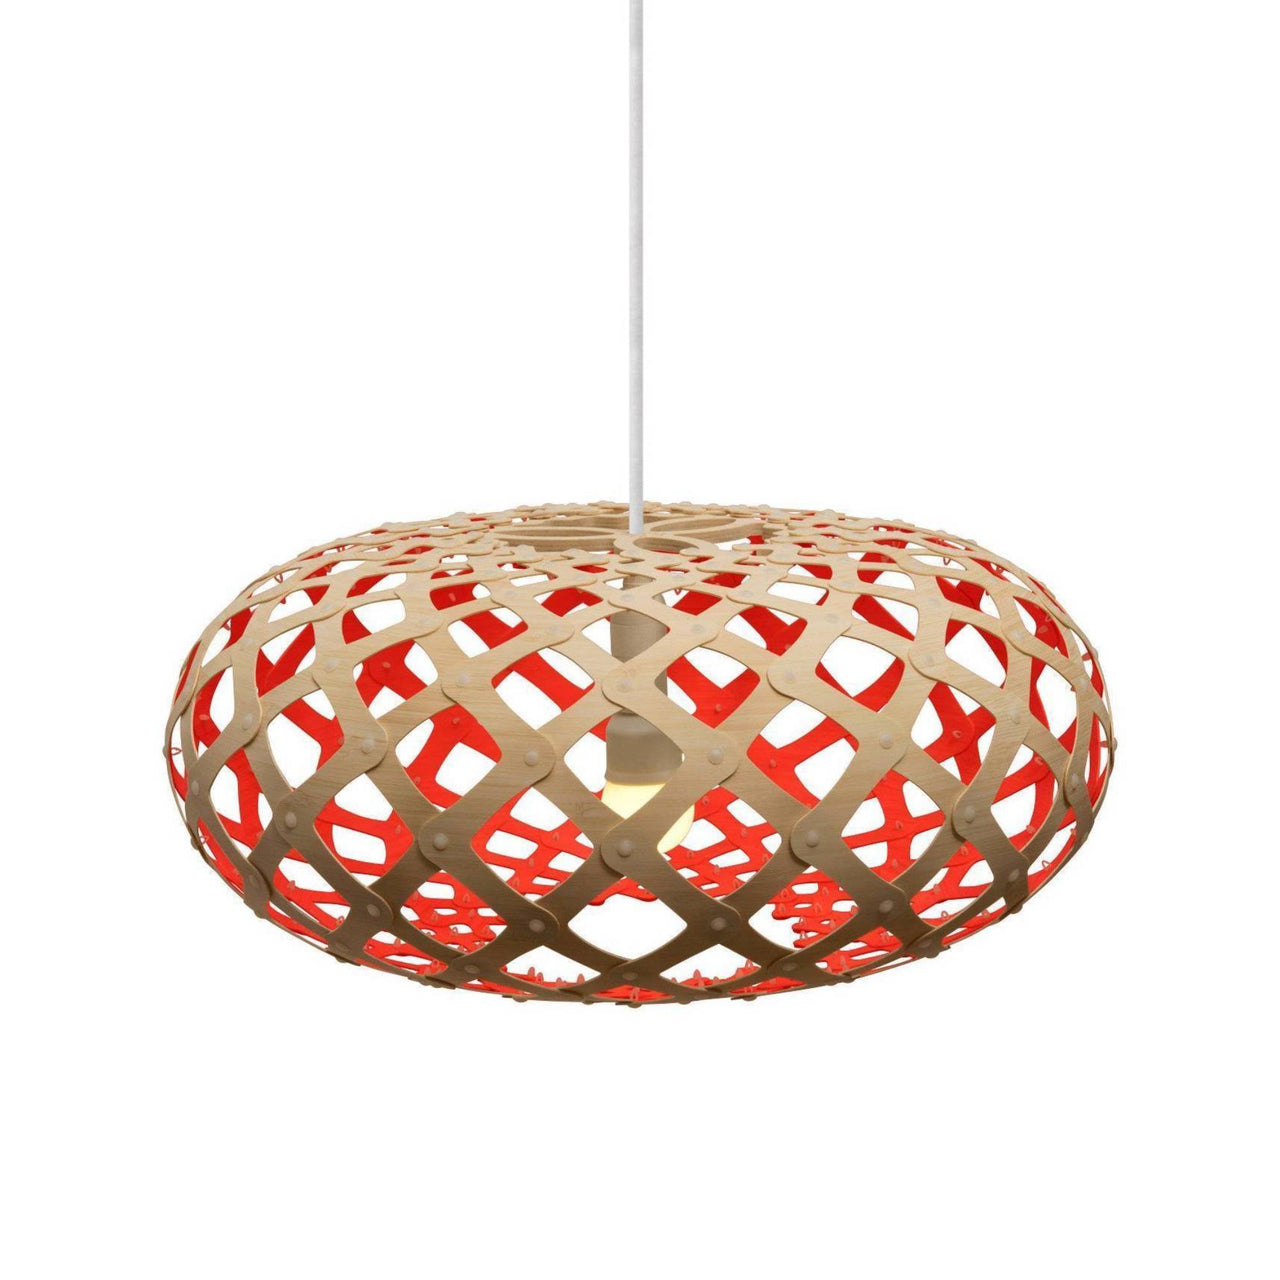 Kina Pendant Light: 600 + Red